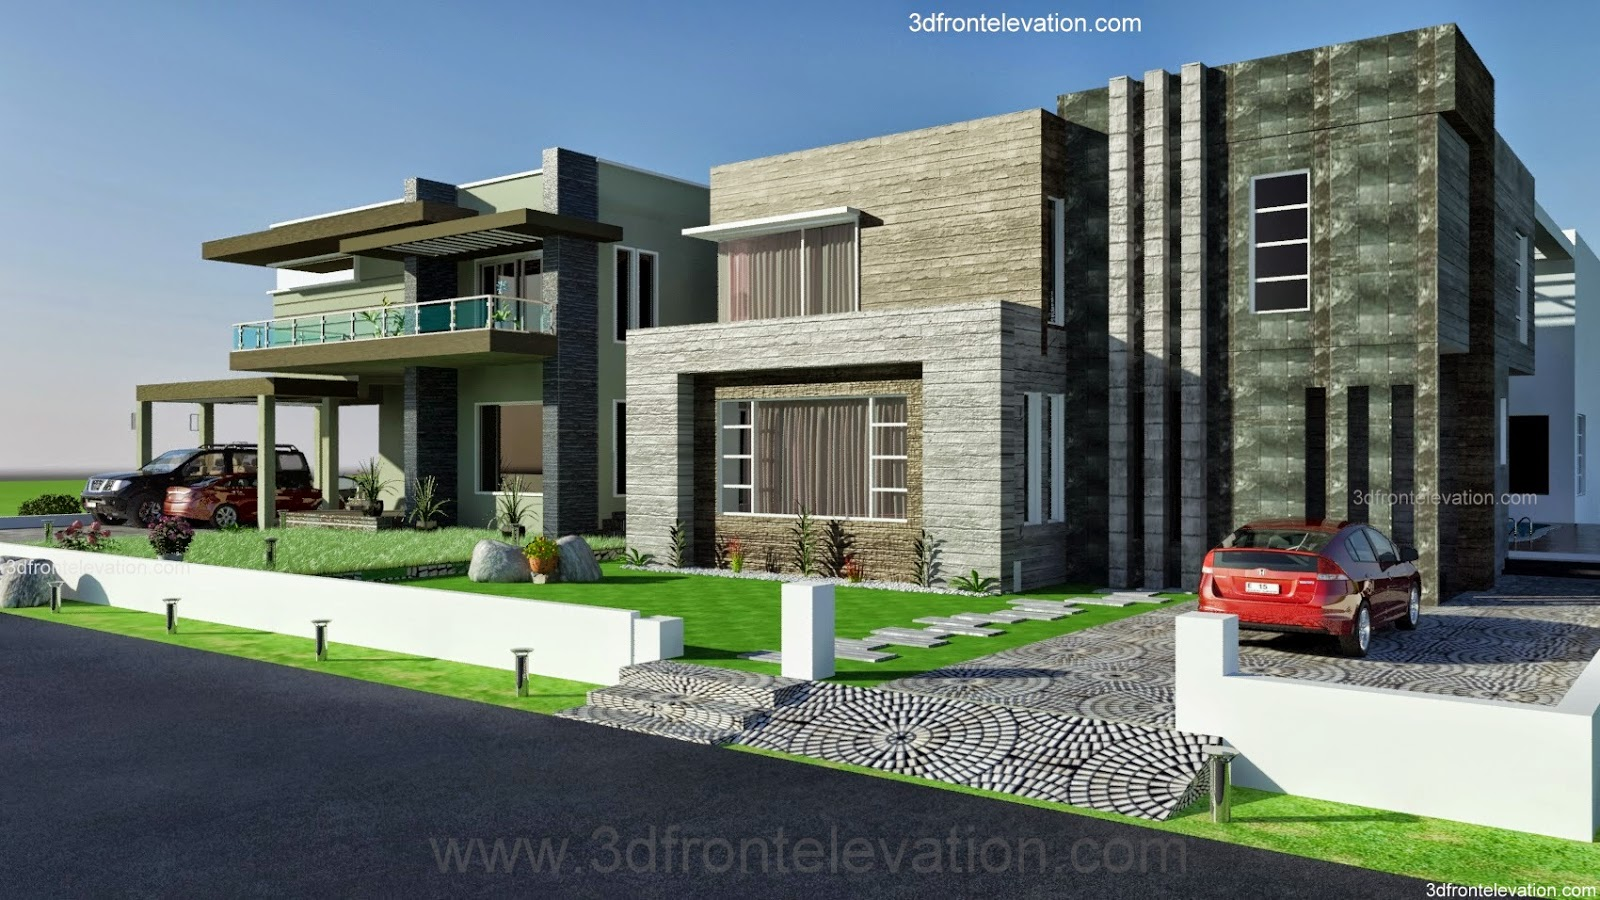 D Front Elevation Of Commercial Building : Contemporary commercial building elevation joy studio